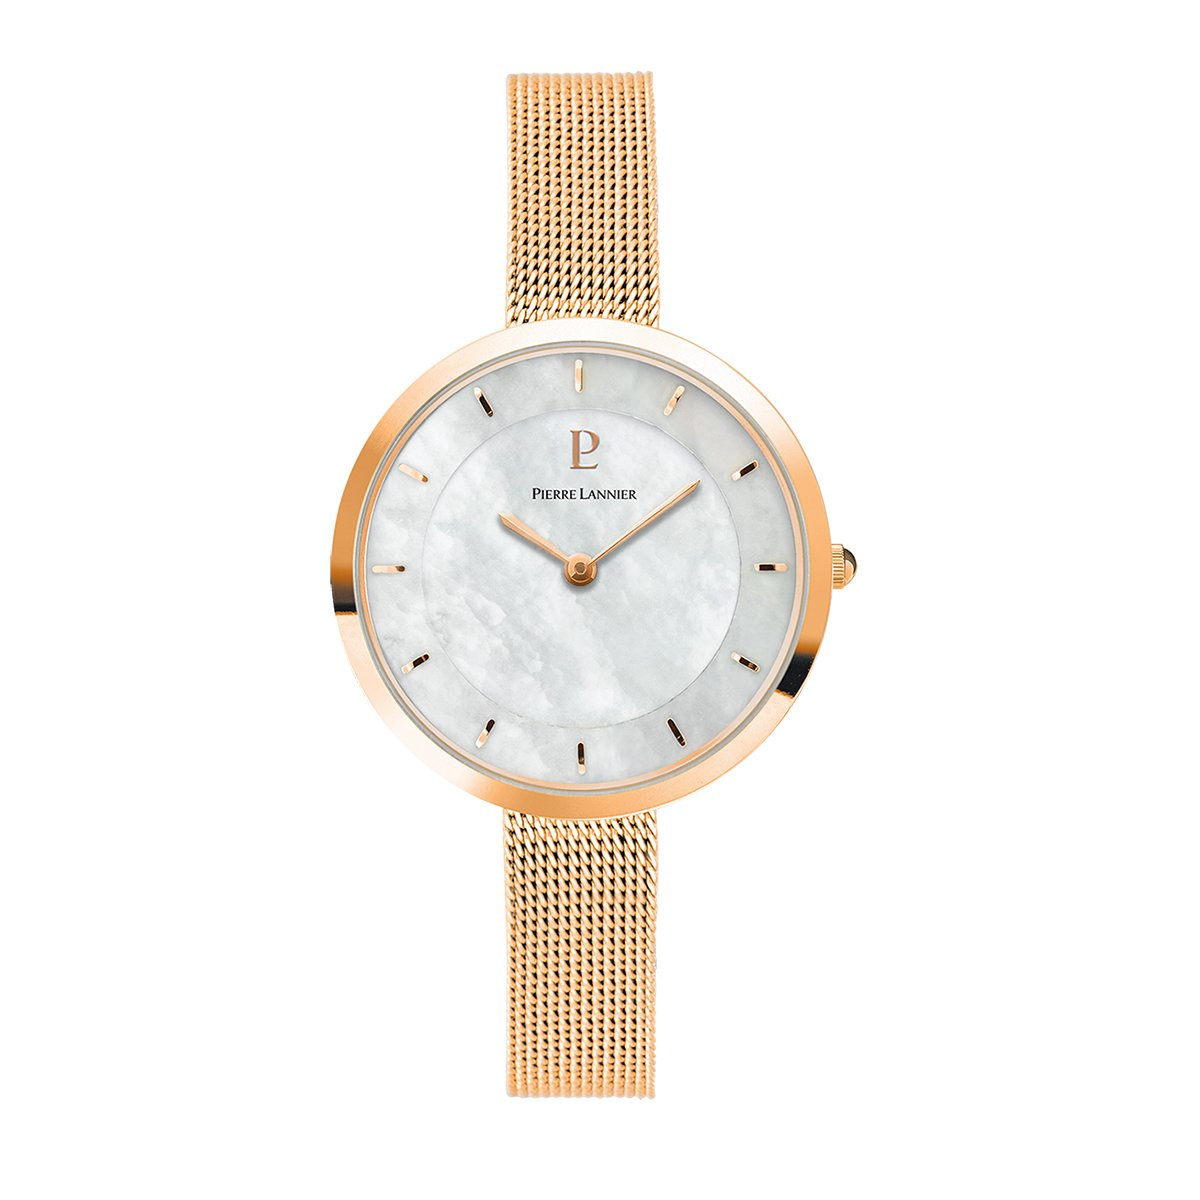 Women's Watch Pierre Lannier - 076G998 - ELEGANCE STYLE - Rose Gold - Milanese Band by Pierre Lannier